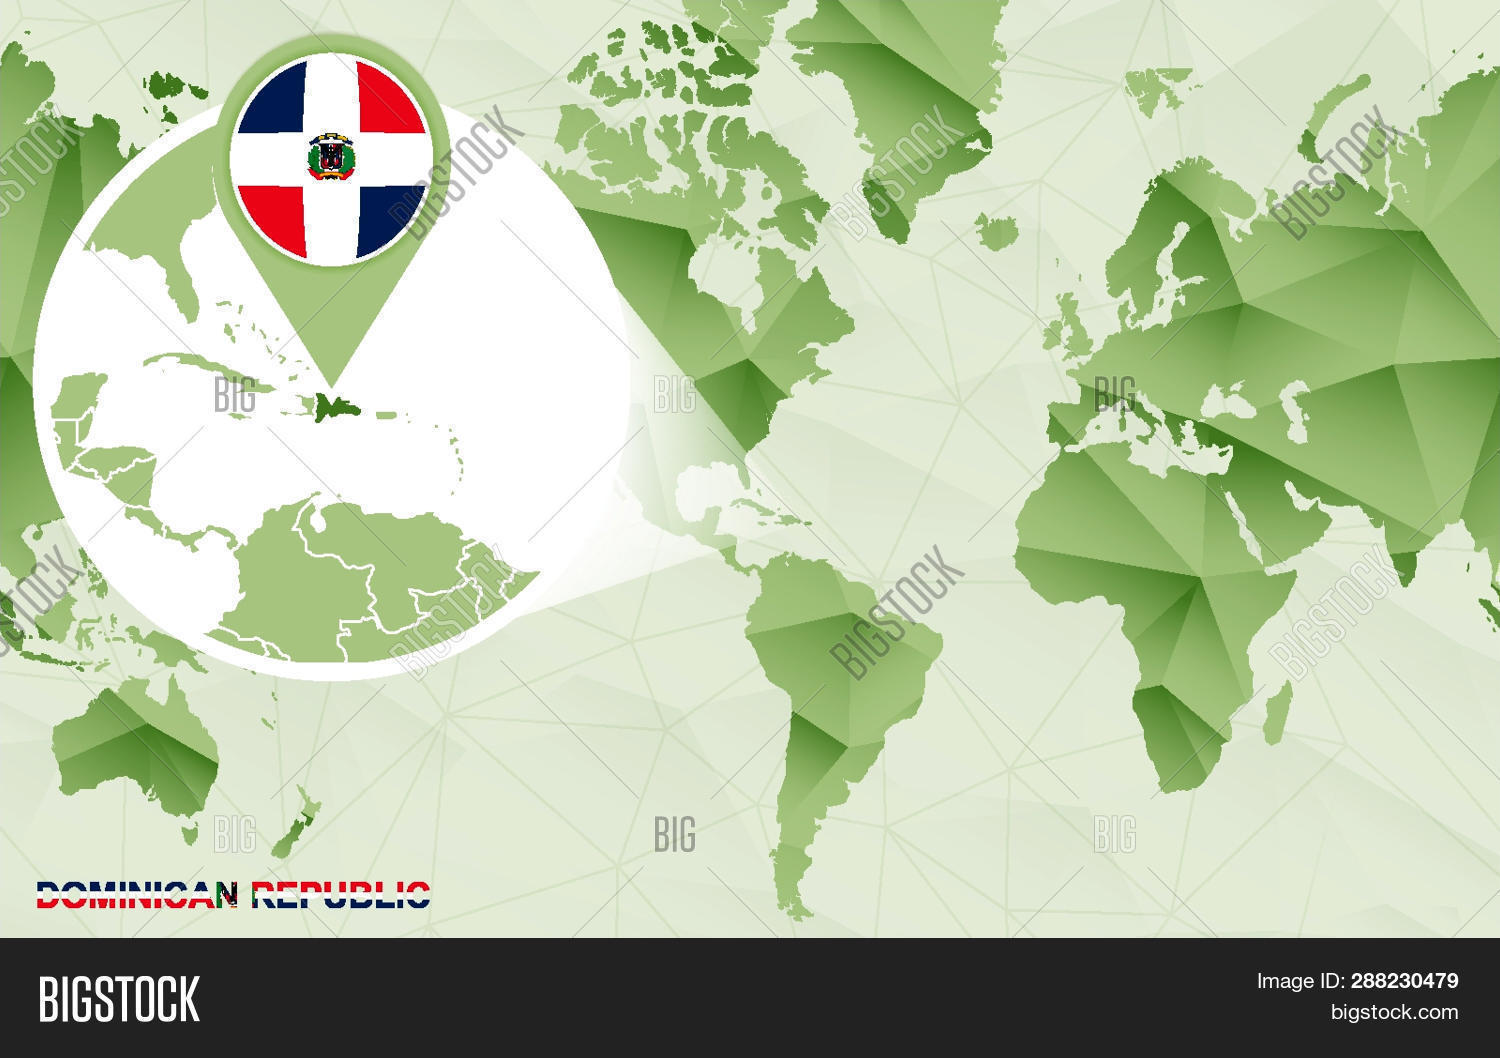 America Centric World Vector & Photo (Free Trial) | Bigstock on peru on map, venezuela on map, dominica on map, italy on map, cuba on map, denmark on map, argentina on map, lebanon on map, mexico on map, spain on map,